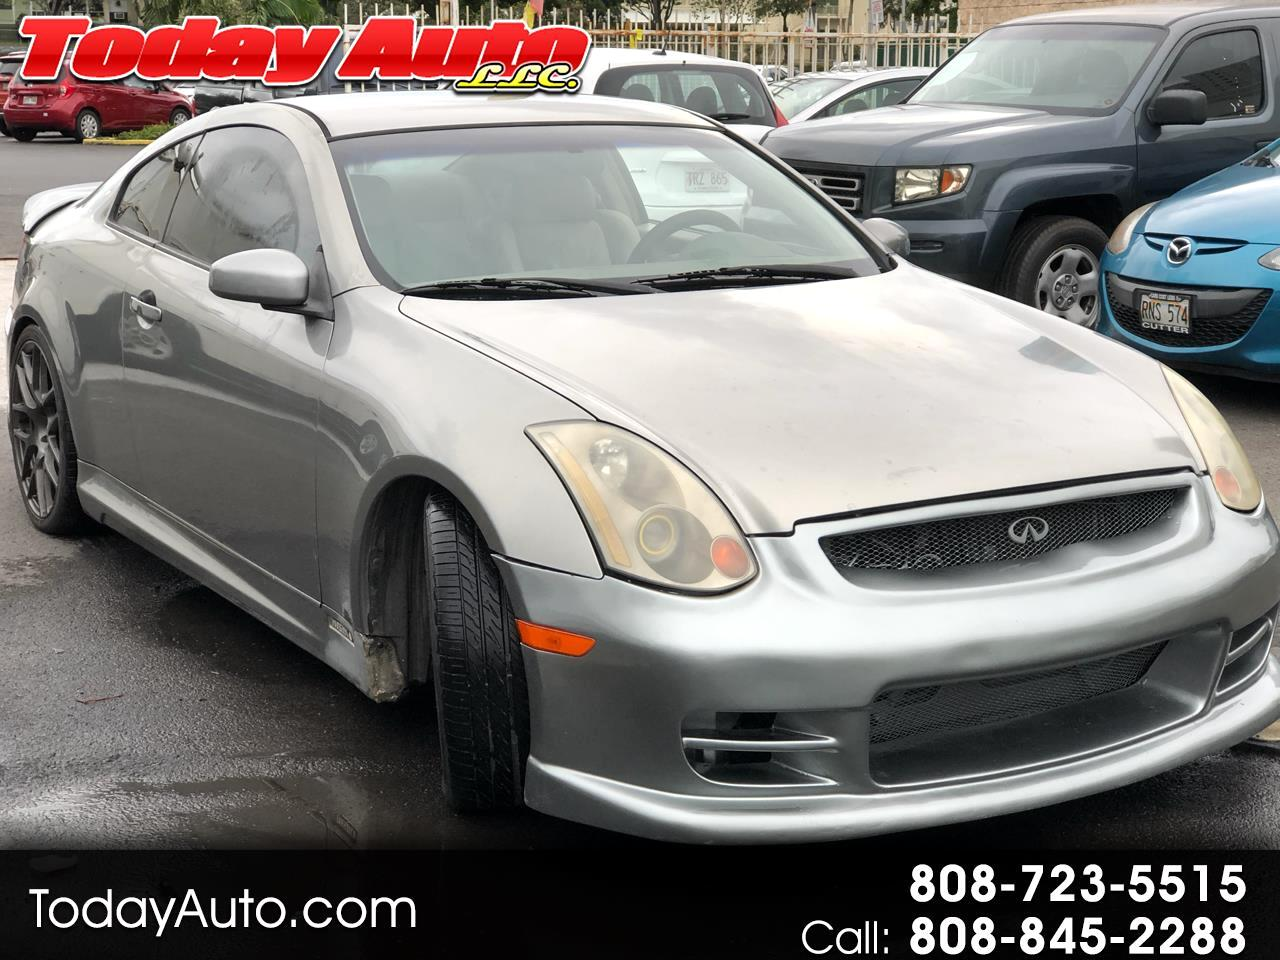 Infiniti G35 Coupe 2dr Cpe Manual w/Leather 2004